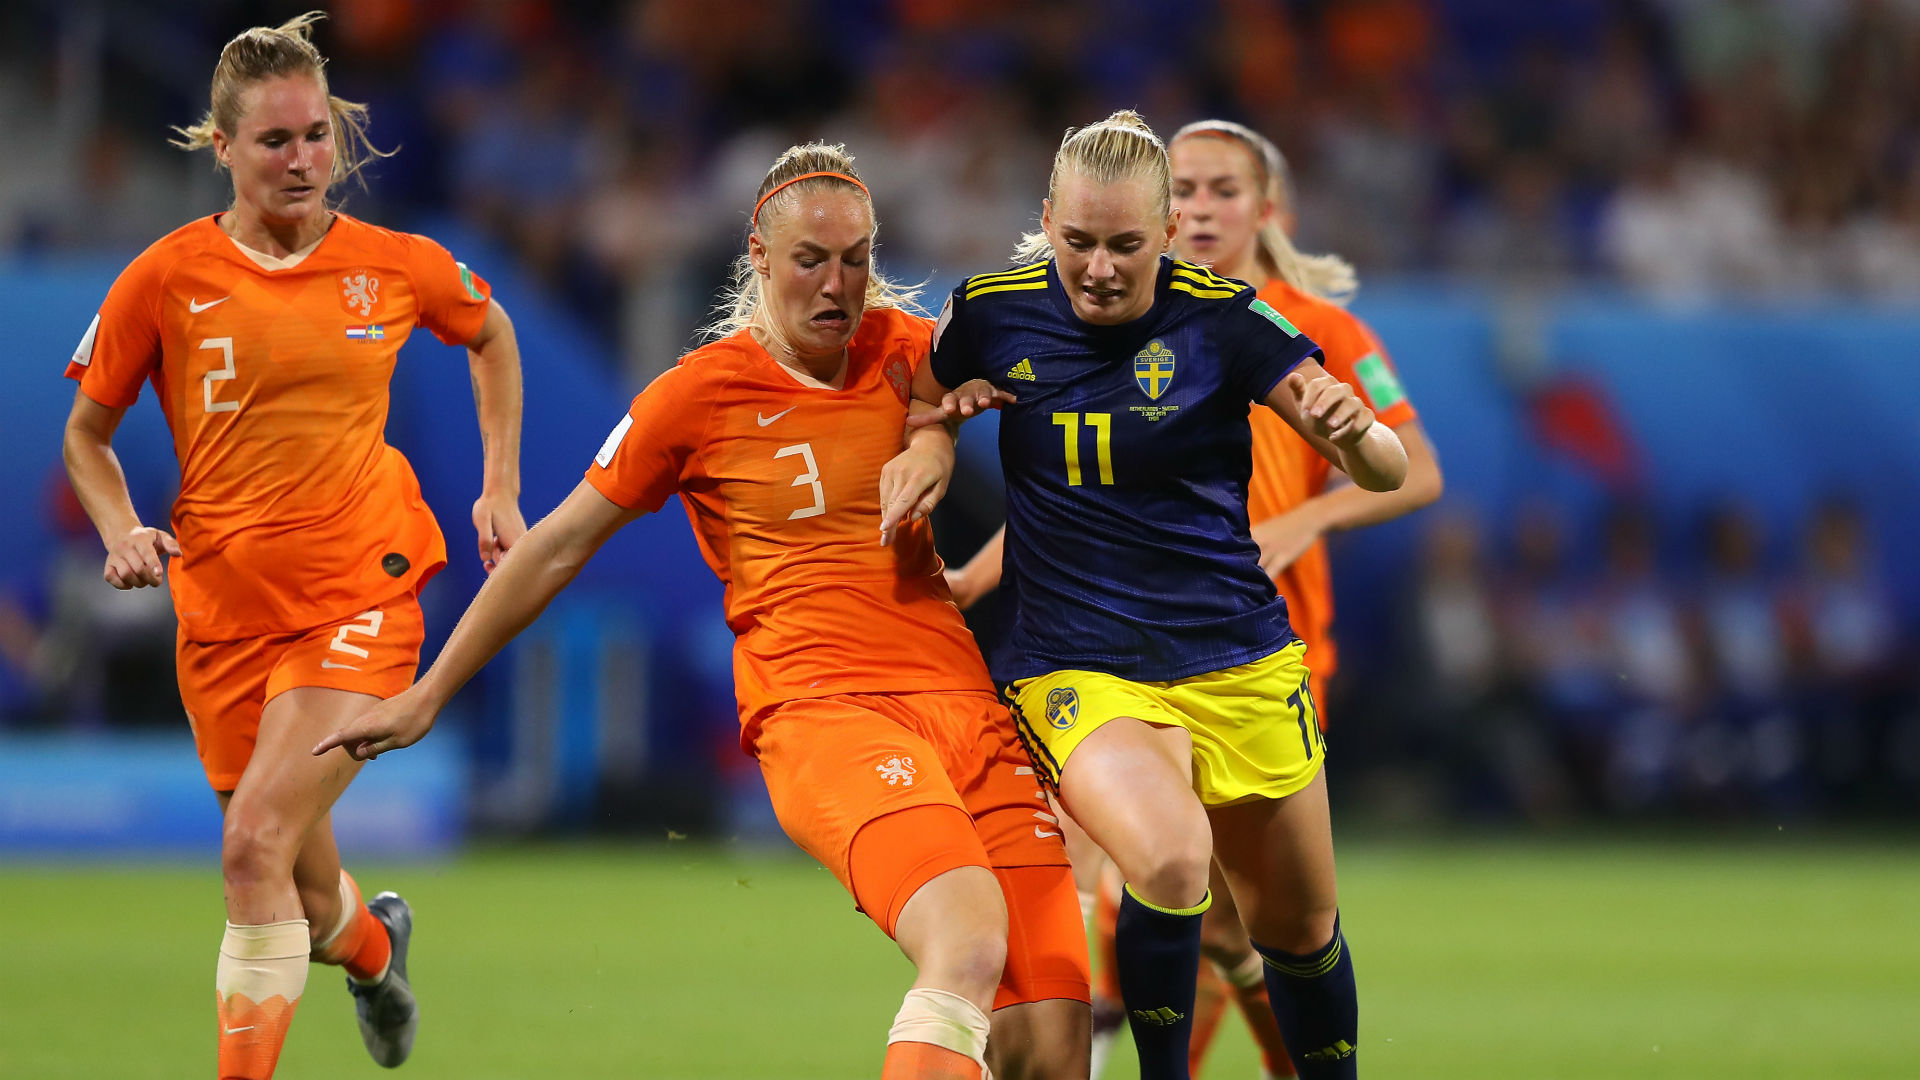 Stina Blackstenius Stefanie Van der Gragt Sweden Netherlands Women's World Cup 2019